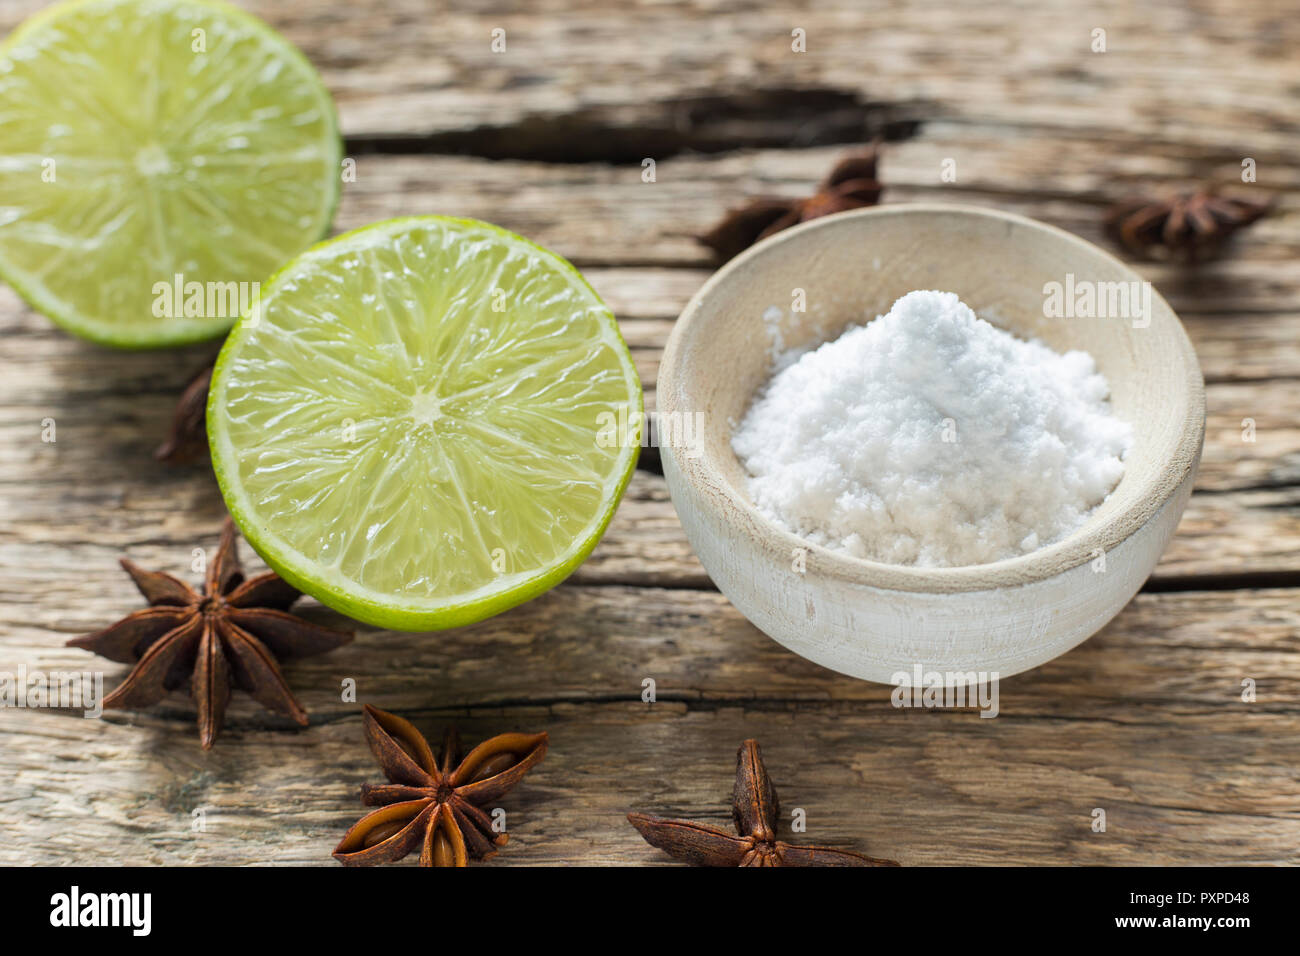 Baking soda and lemon on the table. - Stock Image